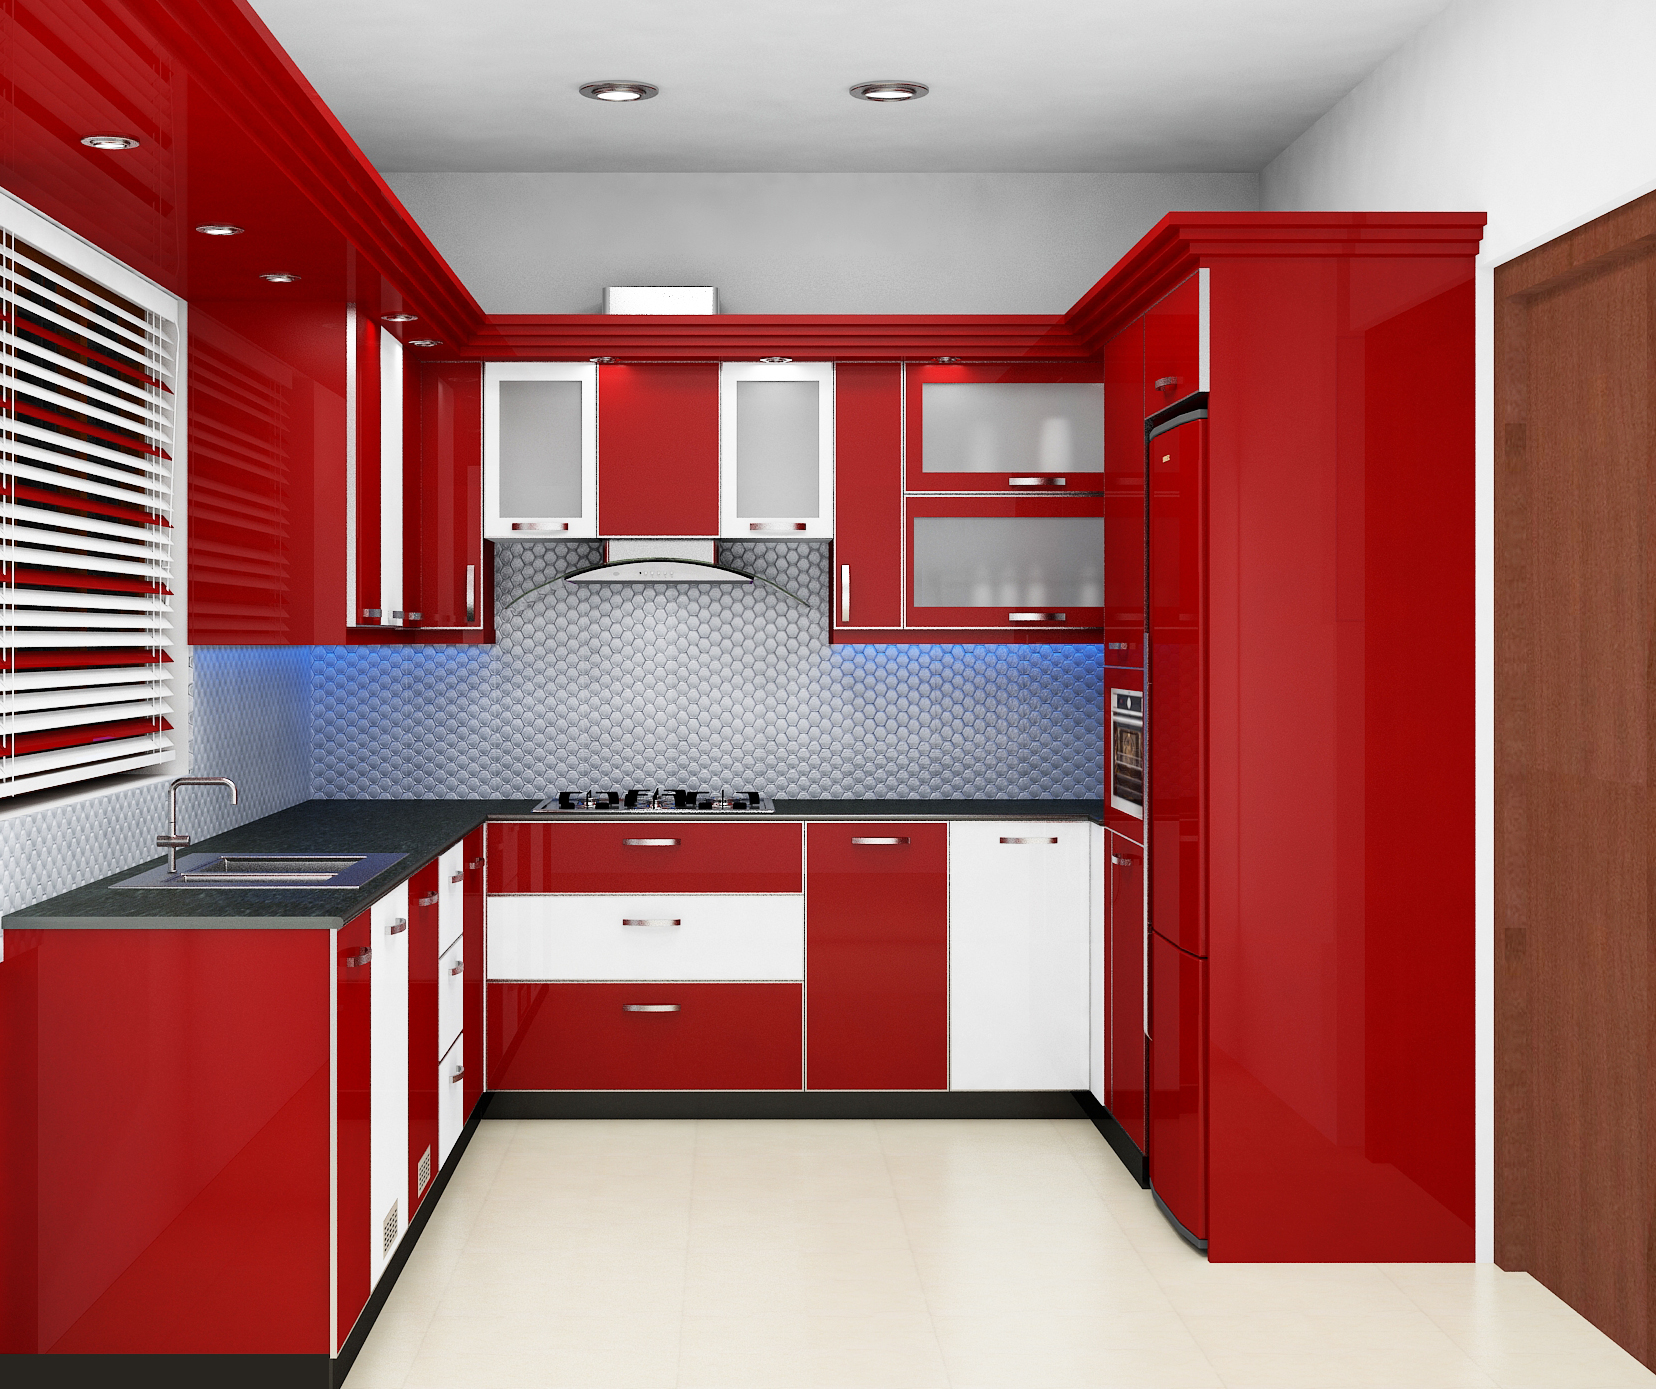 Exemplary and amazing modular kitchen home interior design for House interior design photos